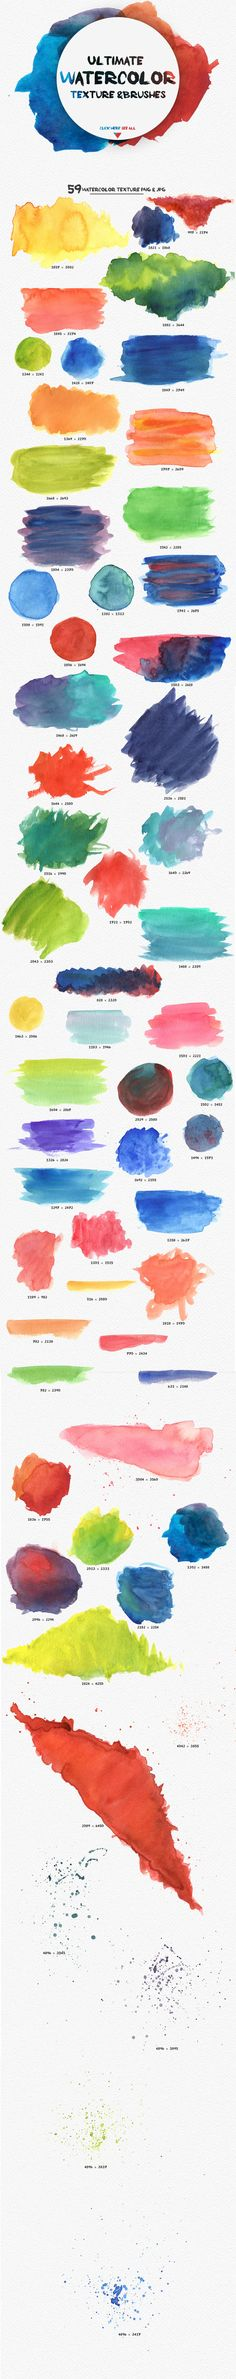 Ultimate  watercolors texture by pina colada on Creative Market